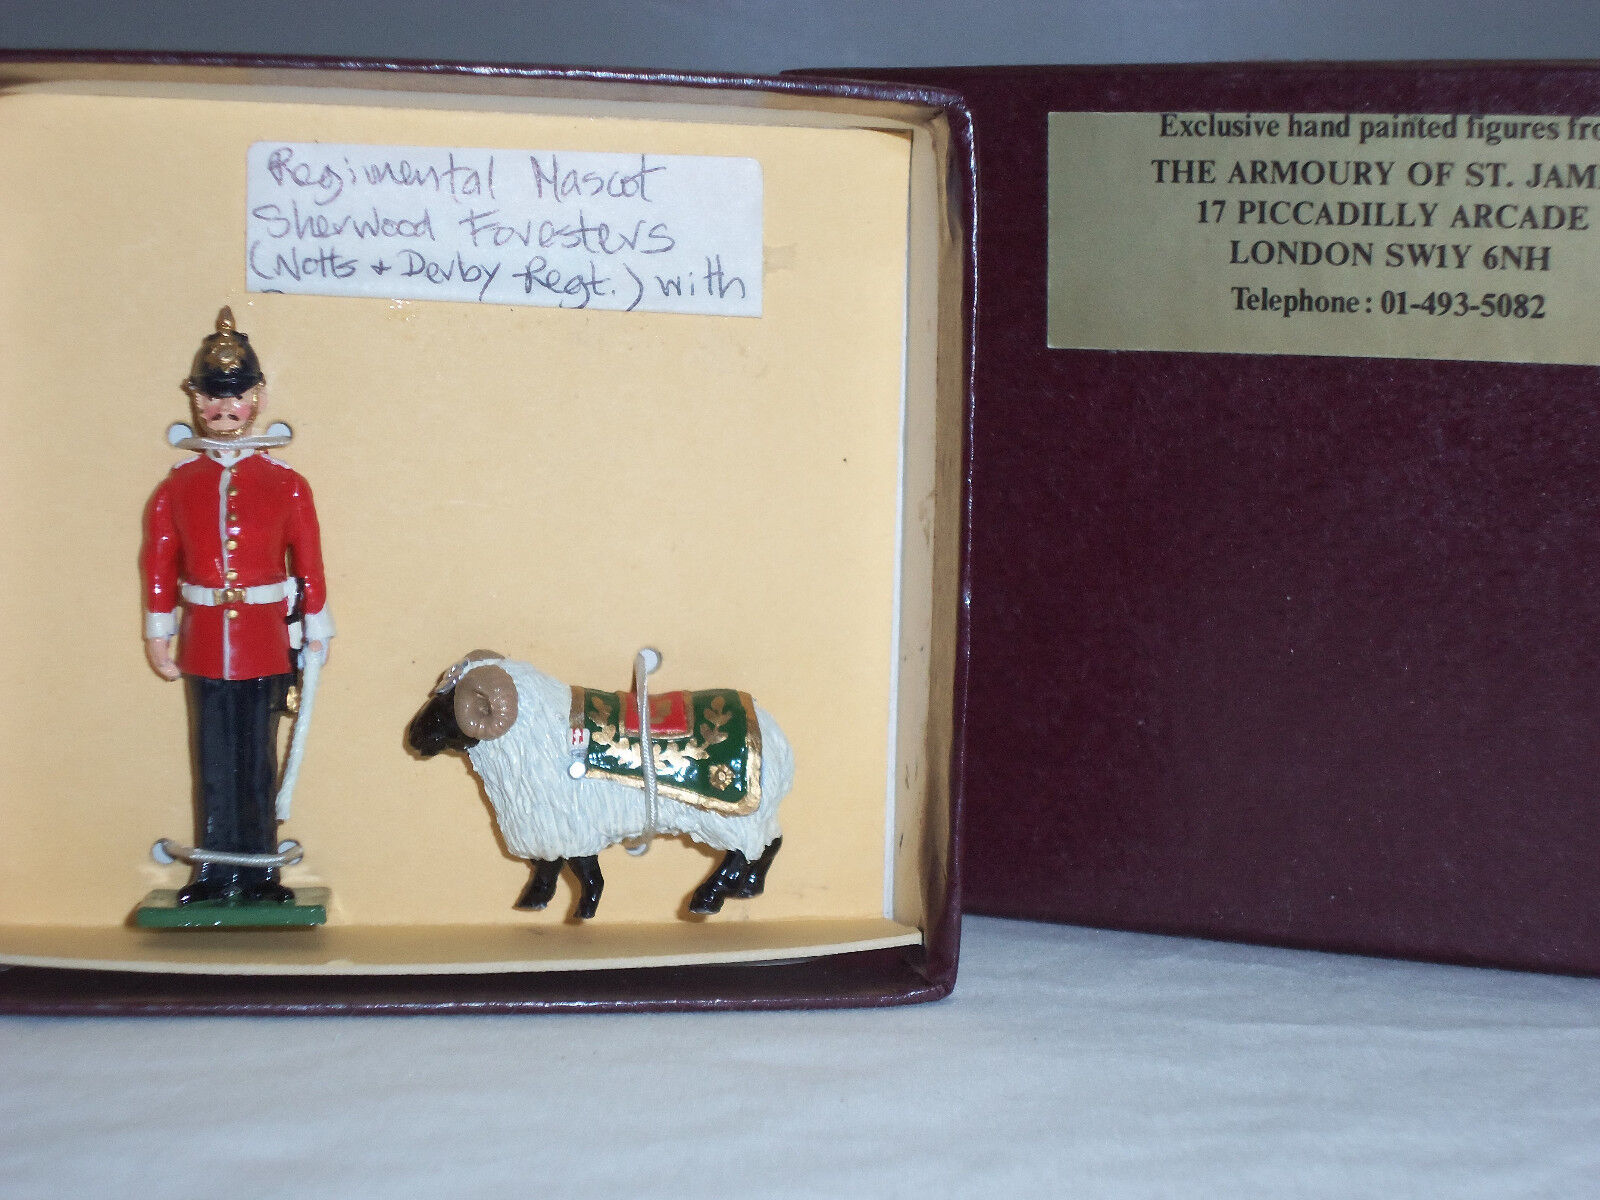 S mascotte  S miniatures HRW1 Sherwood Foresters régiHommes taire mascotte S METAL TOY SOLDIER SET ac8b26